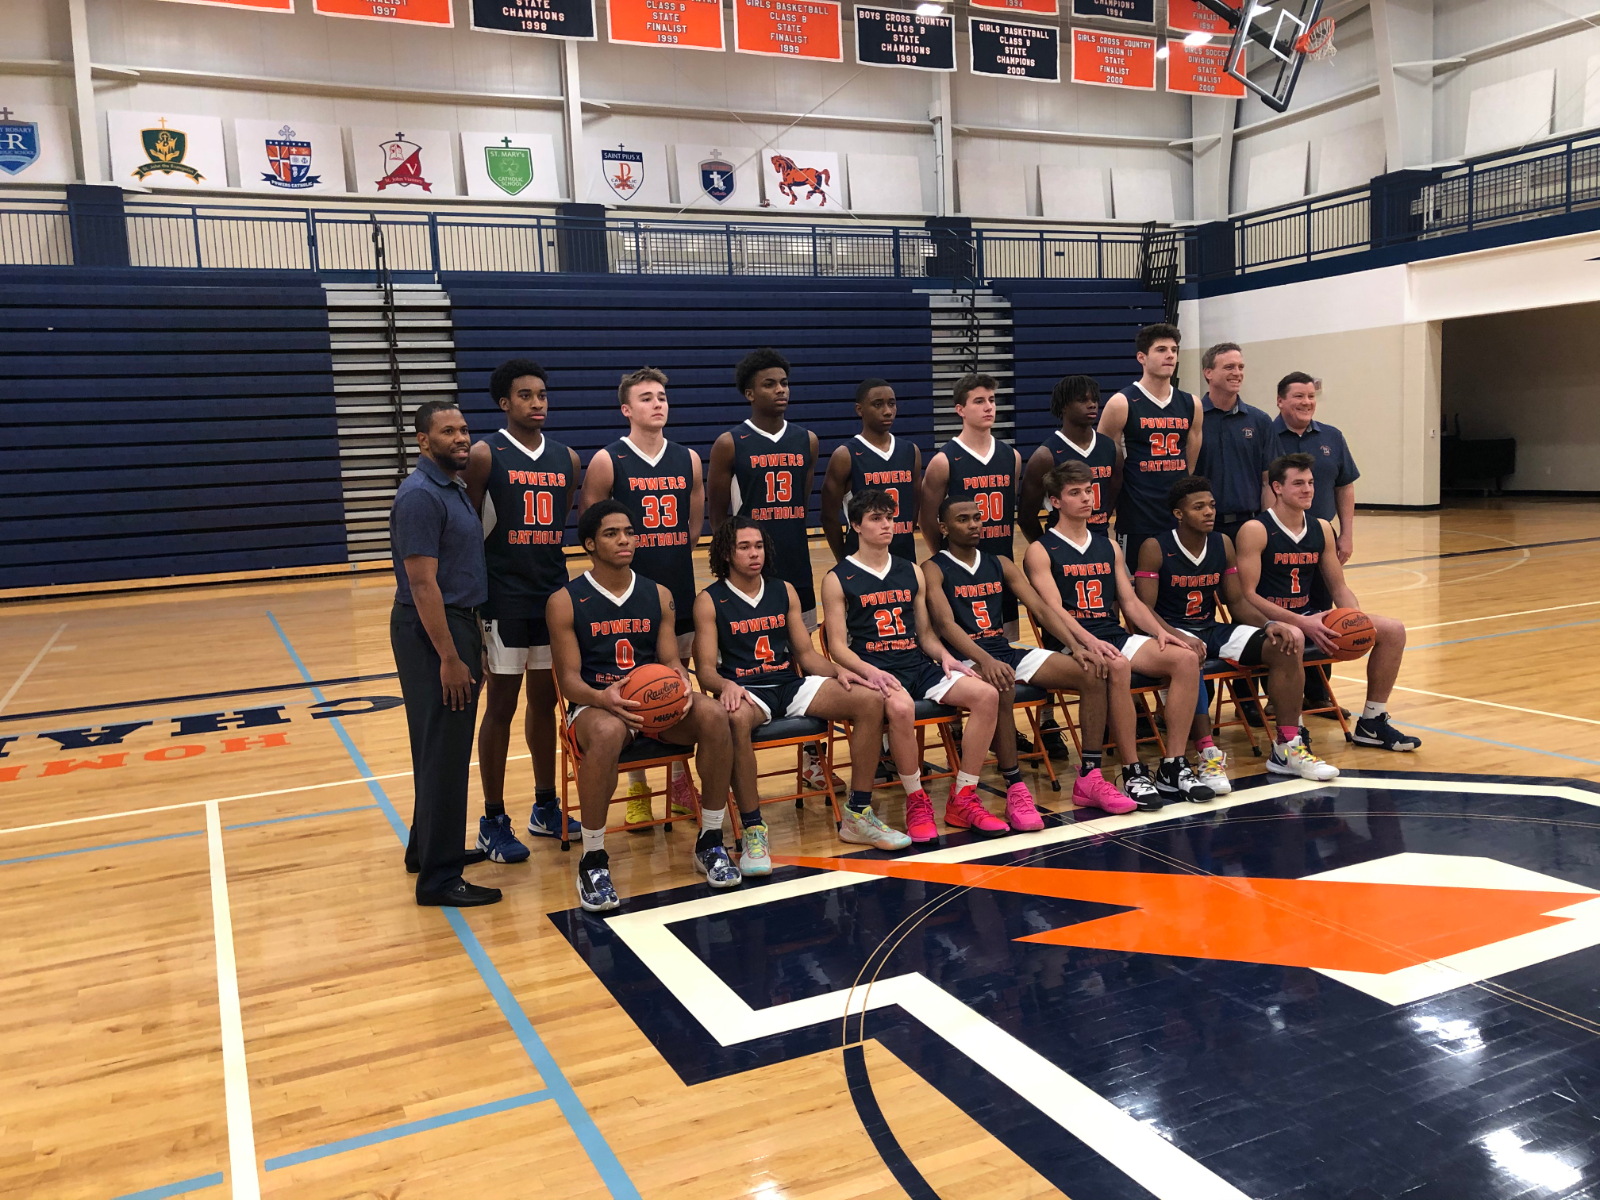 Meet your 2019/2020 Powers Catholic Charger Basketball Team